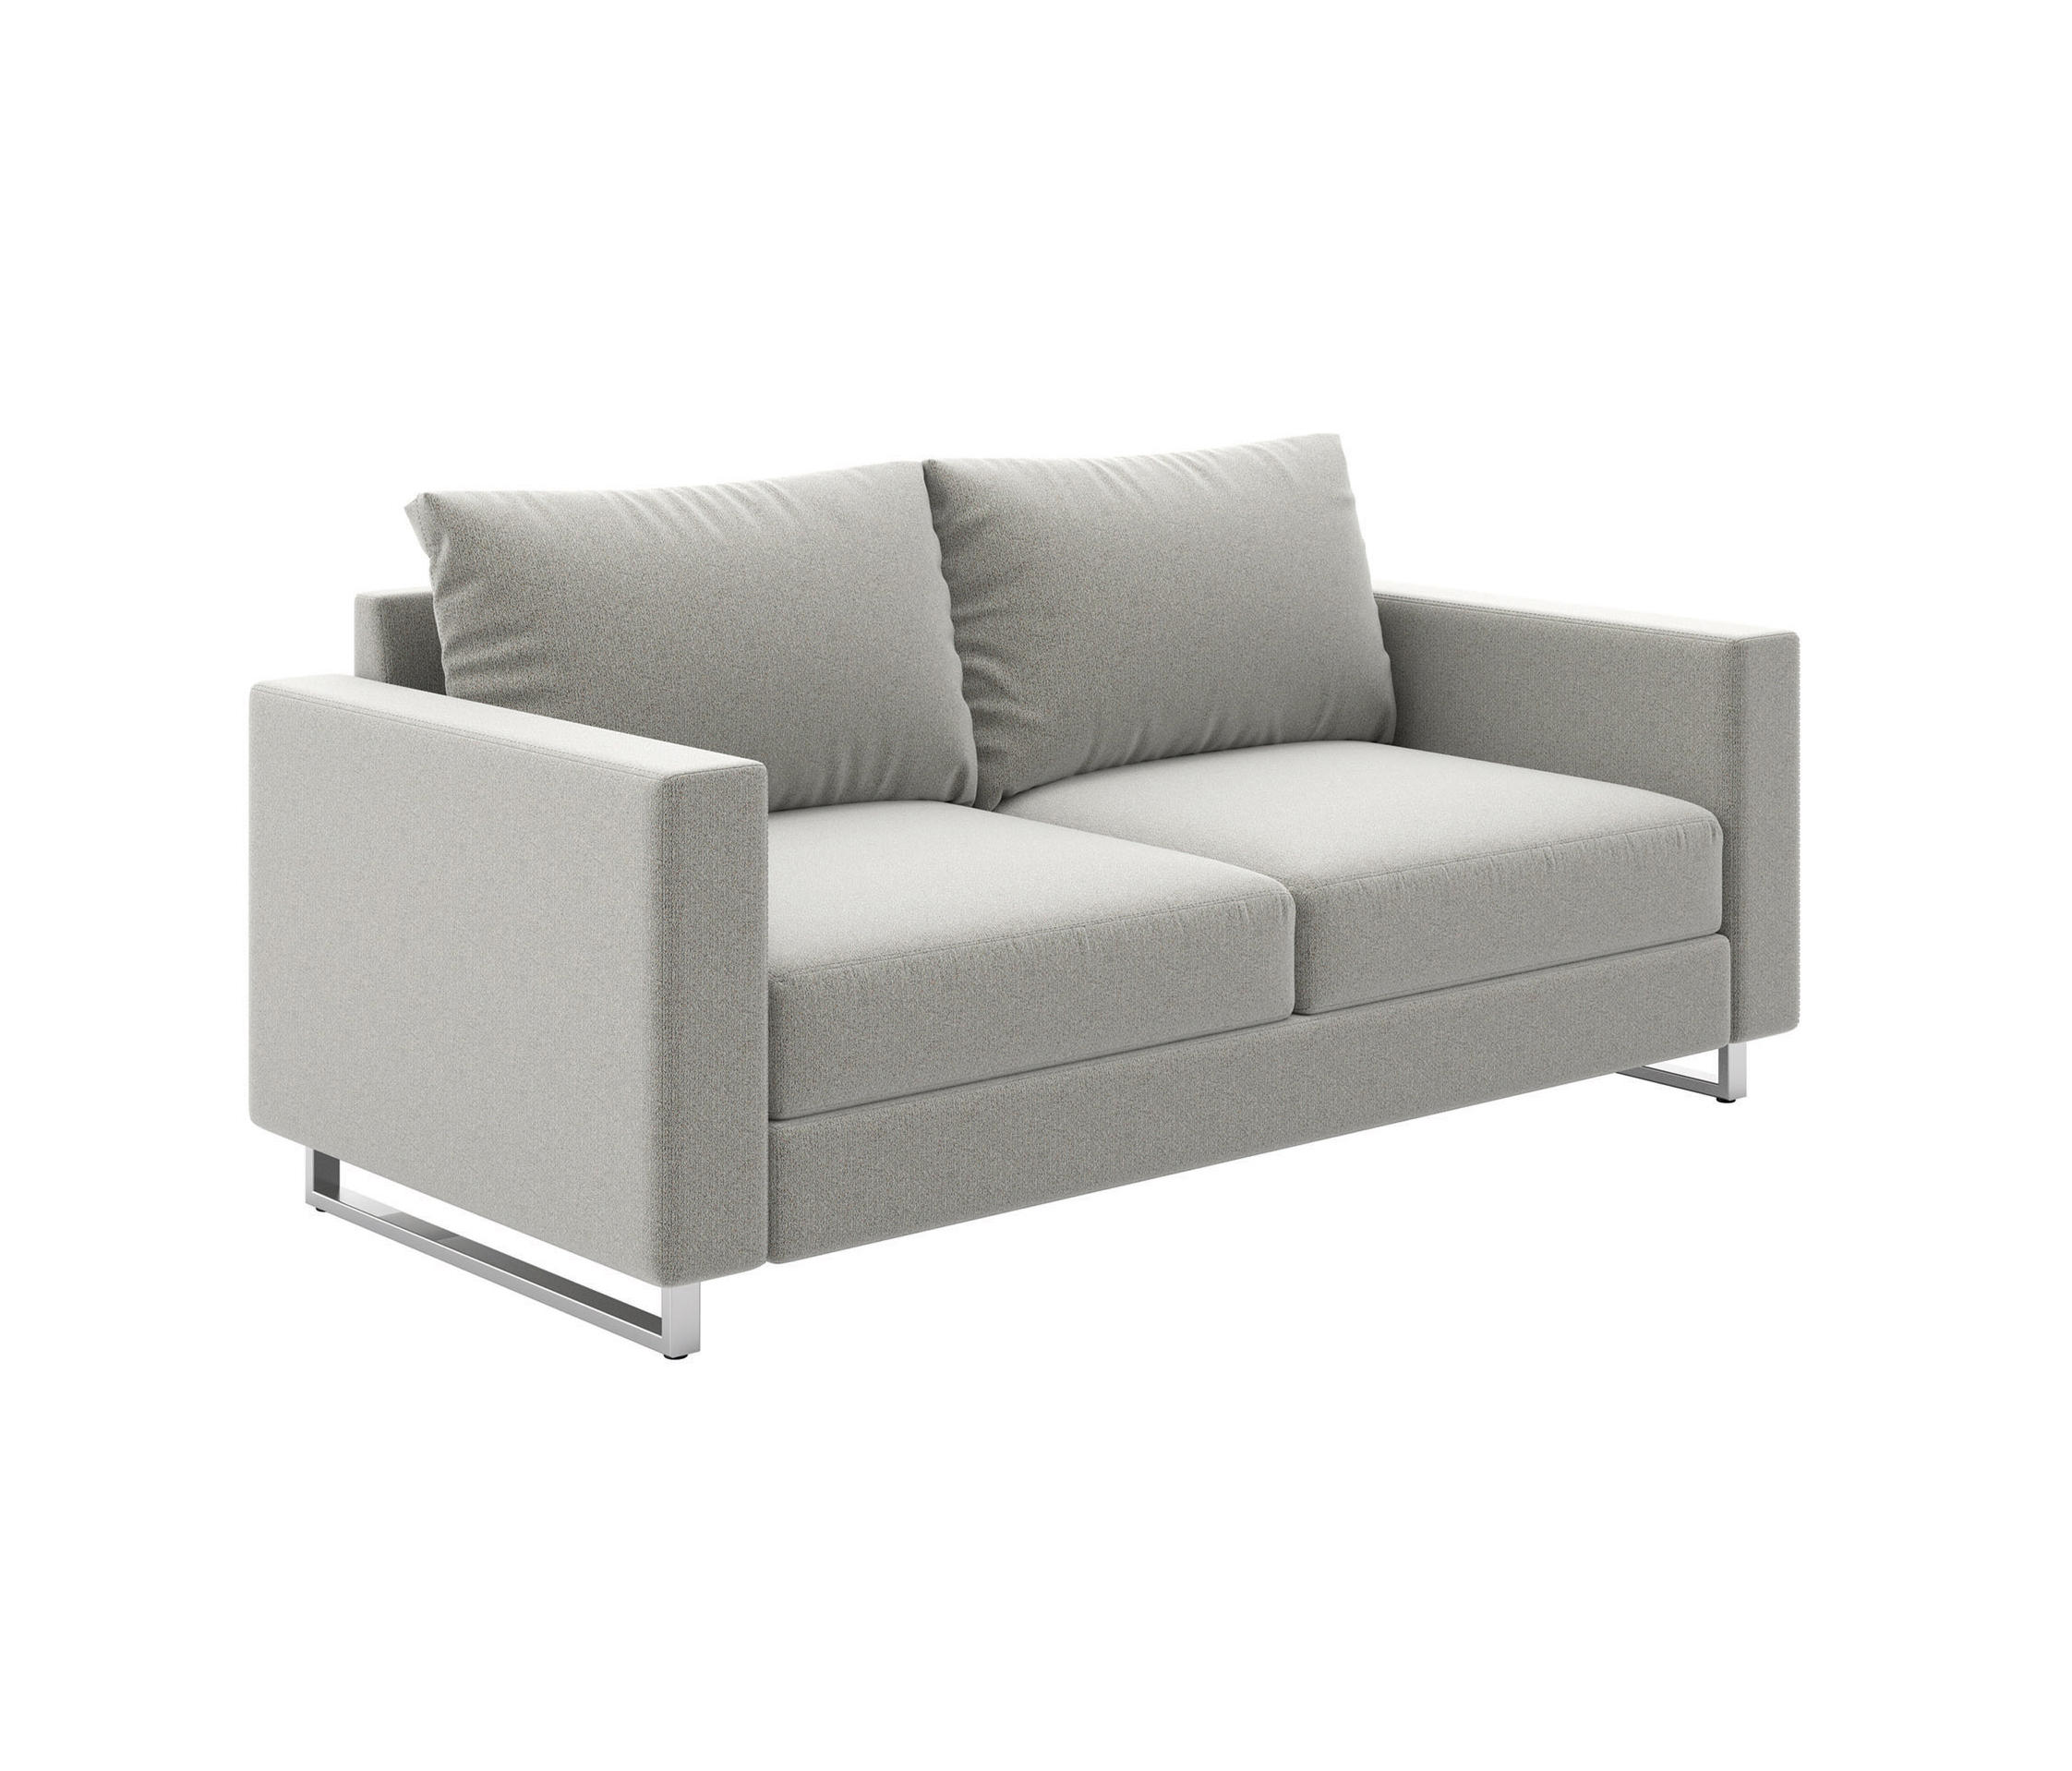 COLLETTE SEATING - Sofas from National Office Furniture ...